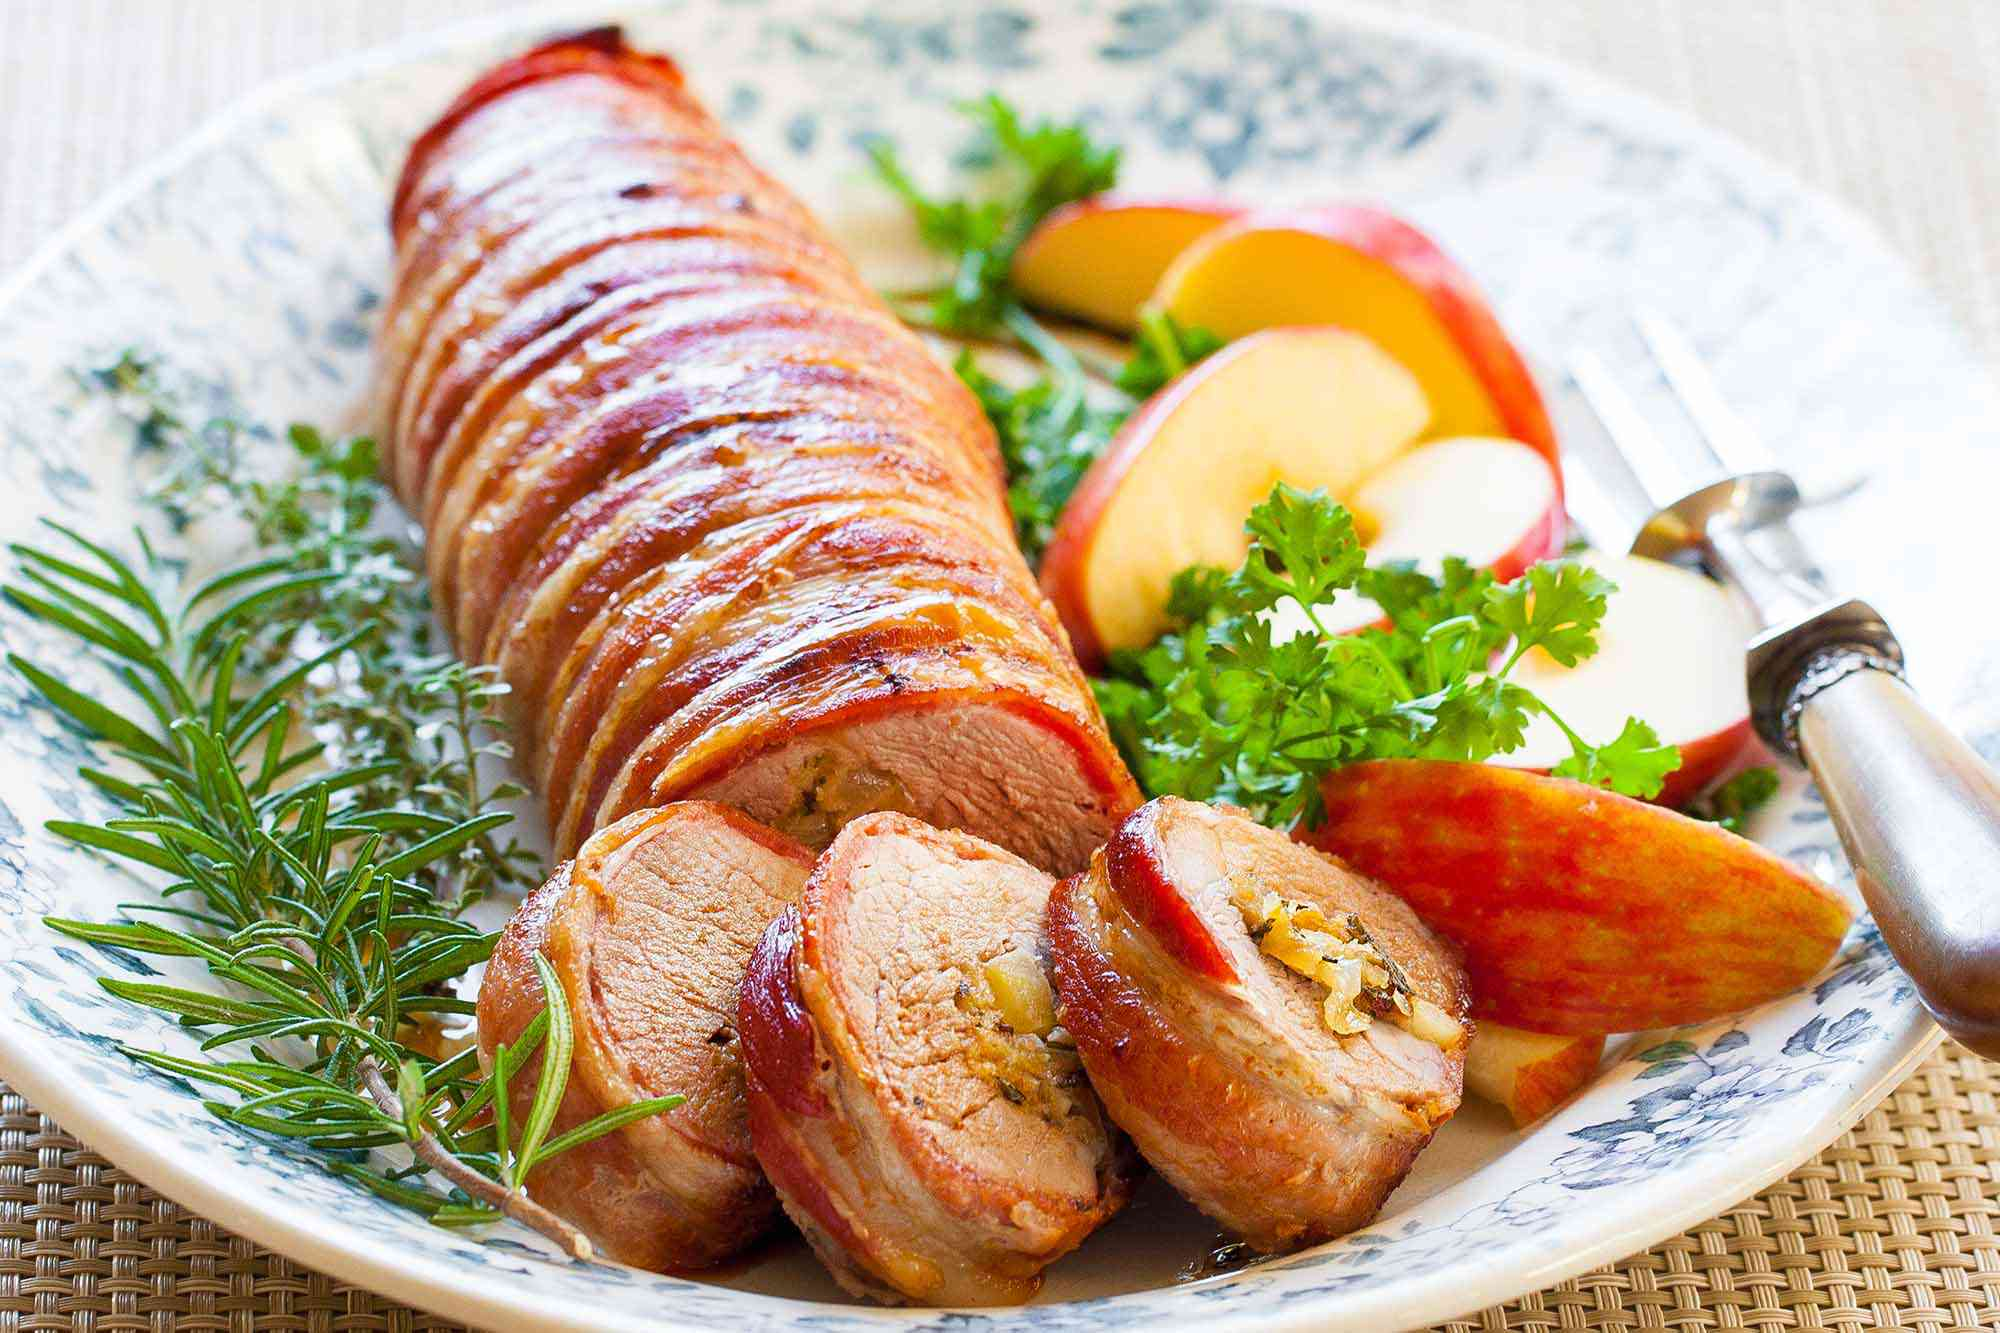 bacon wrapped pork loin served on platter with apples